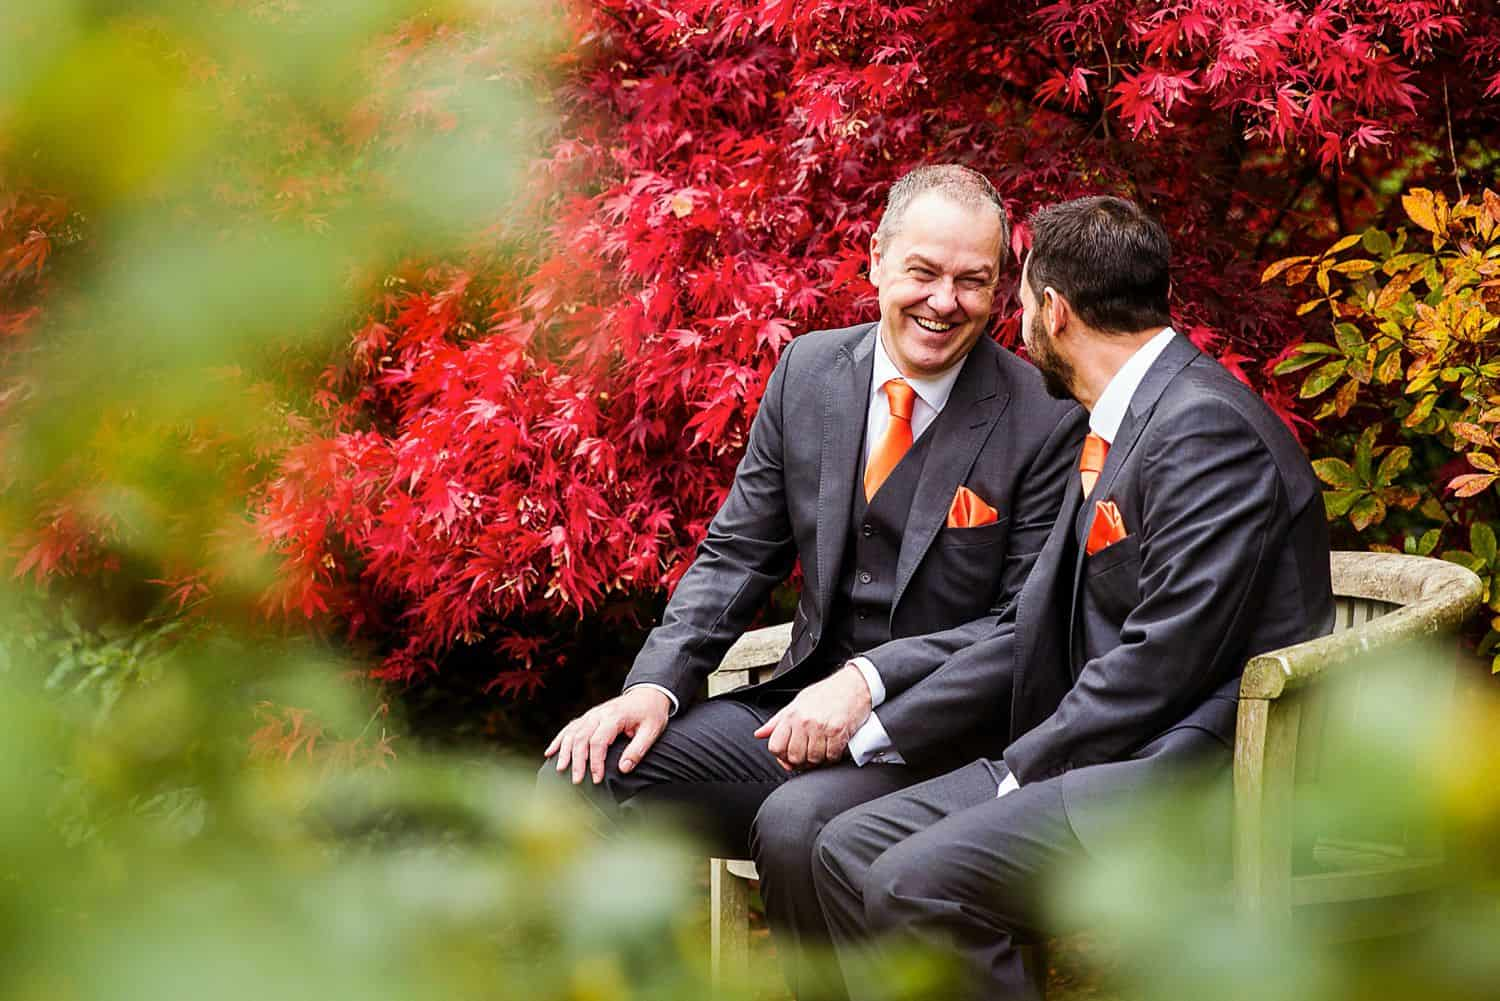 Two groomsmen sit on a bench in a church garden